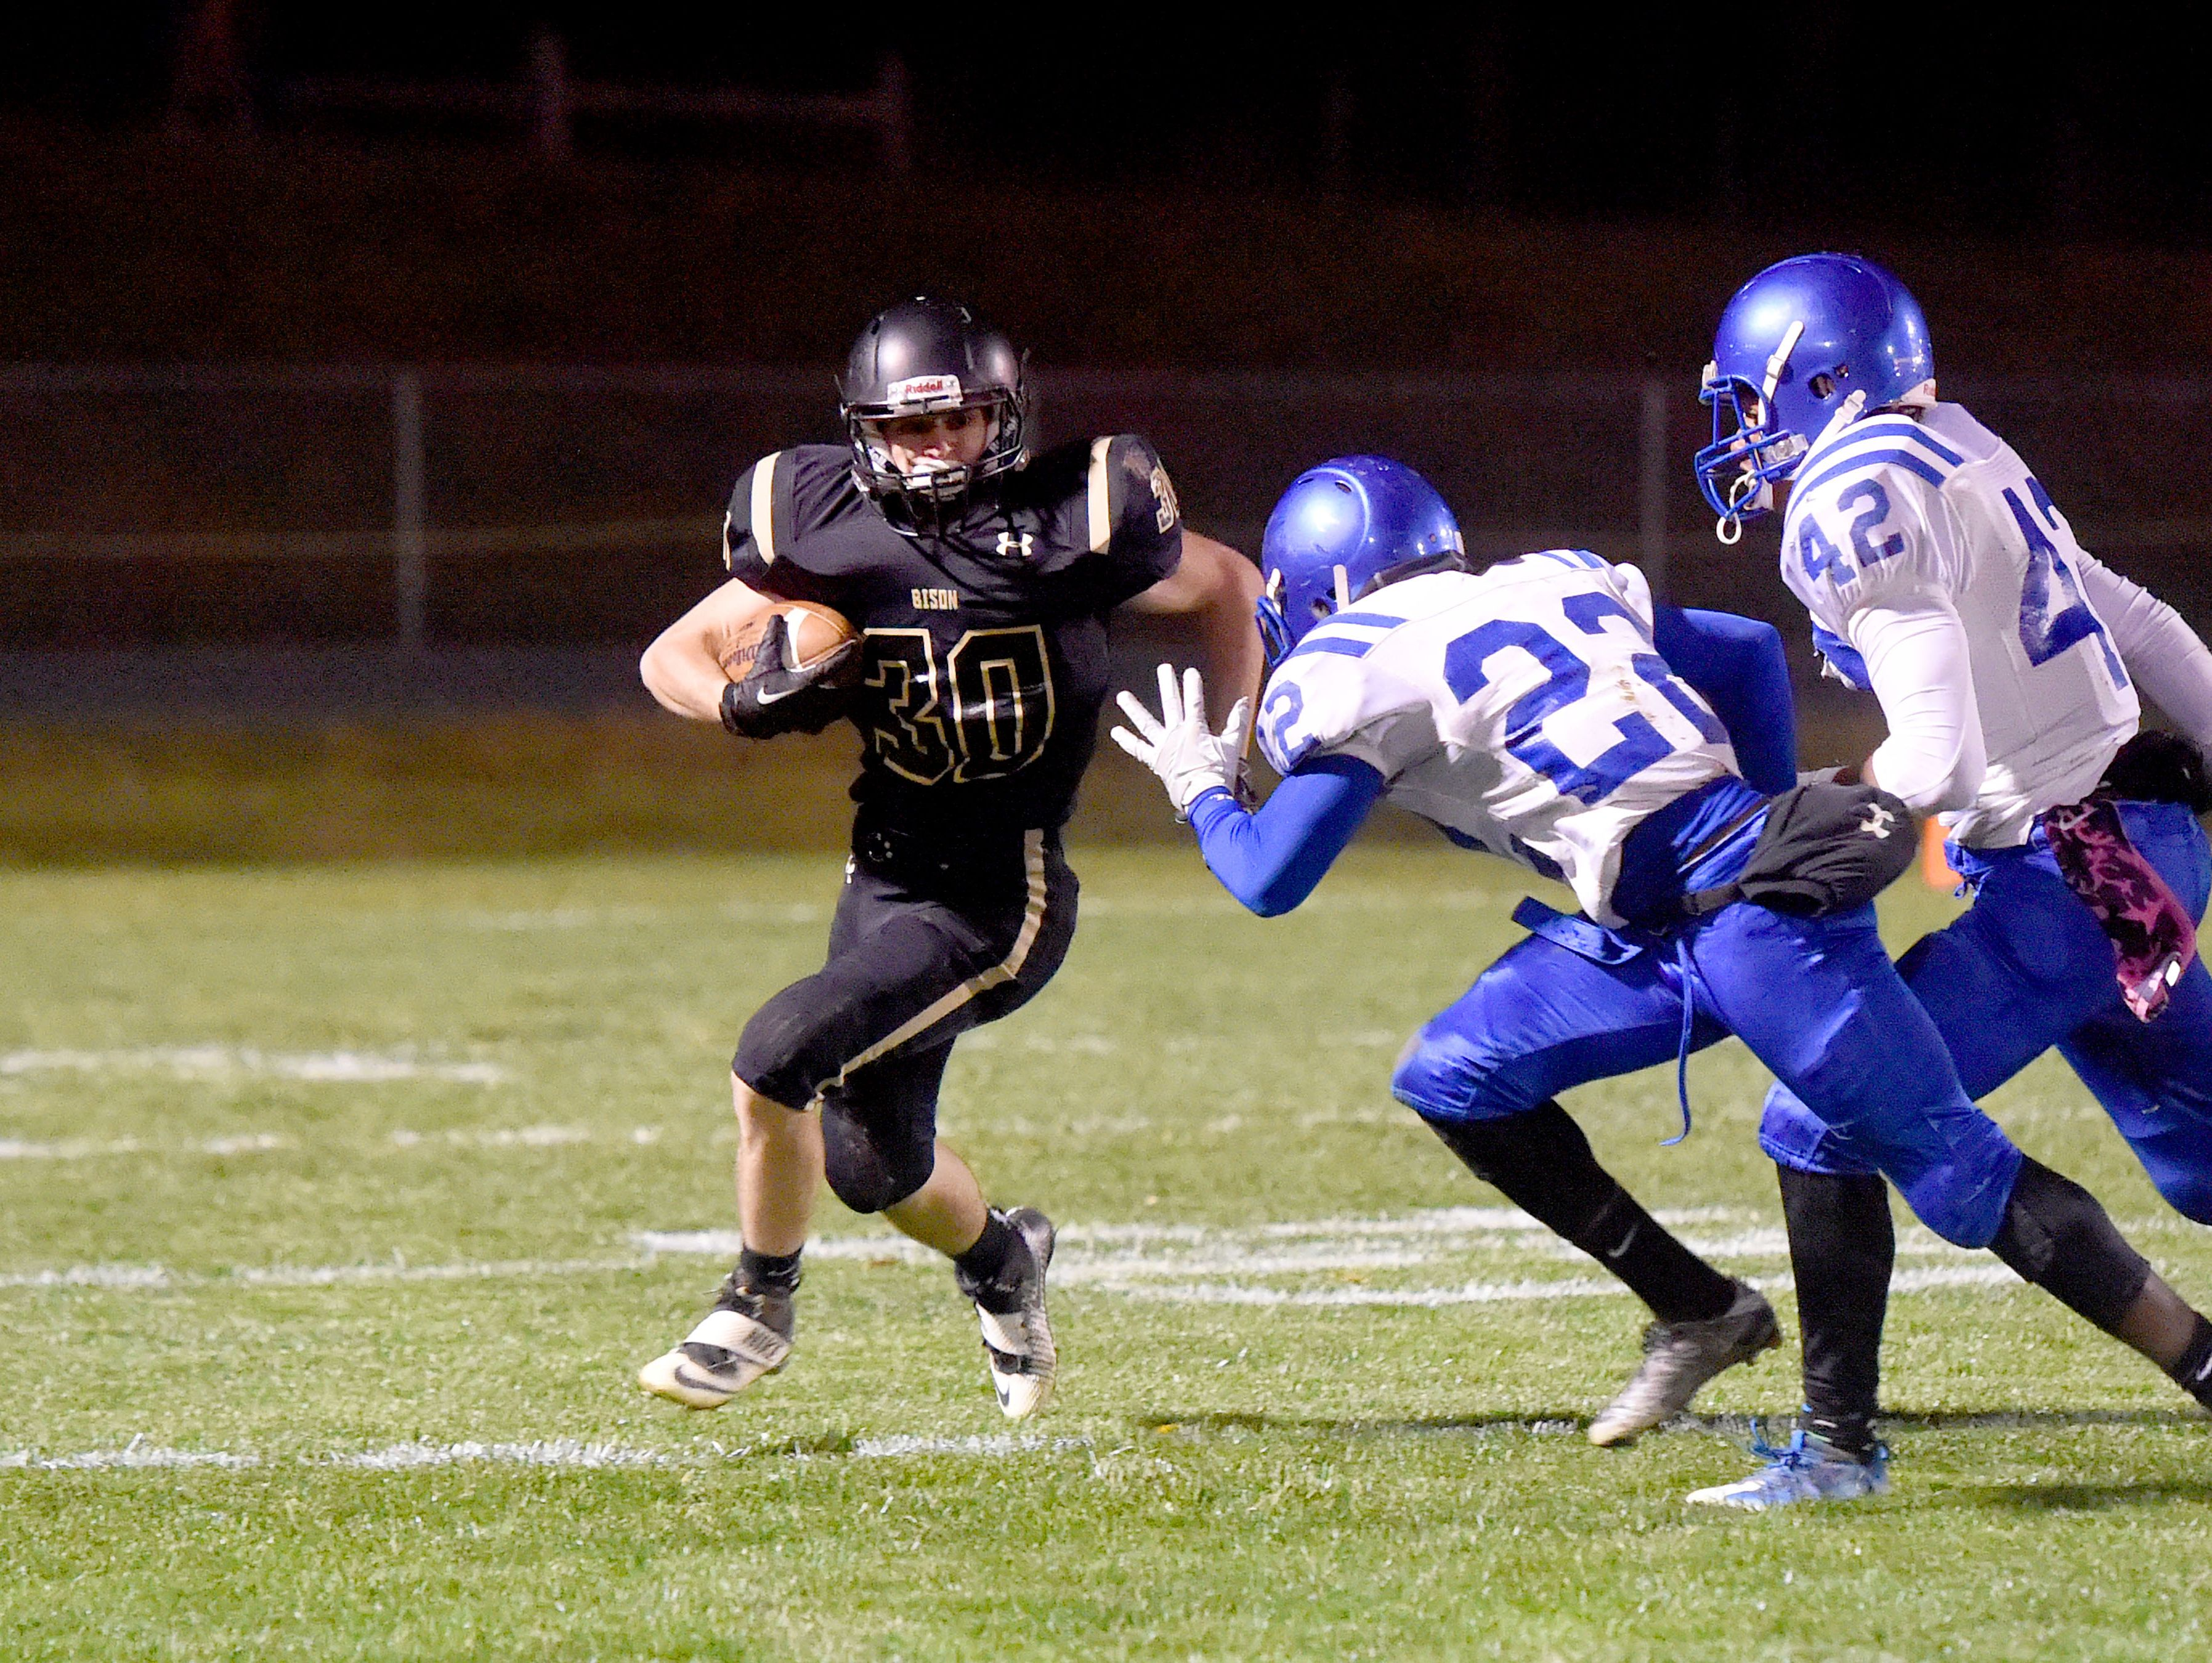 Buffalo Gap's Zach Ingram runs the football as Brunswick's Kwante Rice and Sharmane Alexander close in for the tackle during a football game played in Swoope on Oct. 27, 2016.